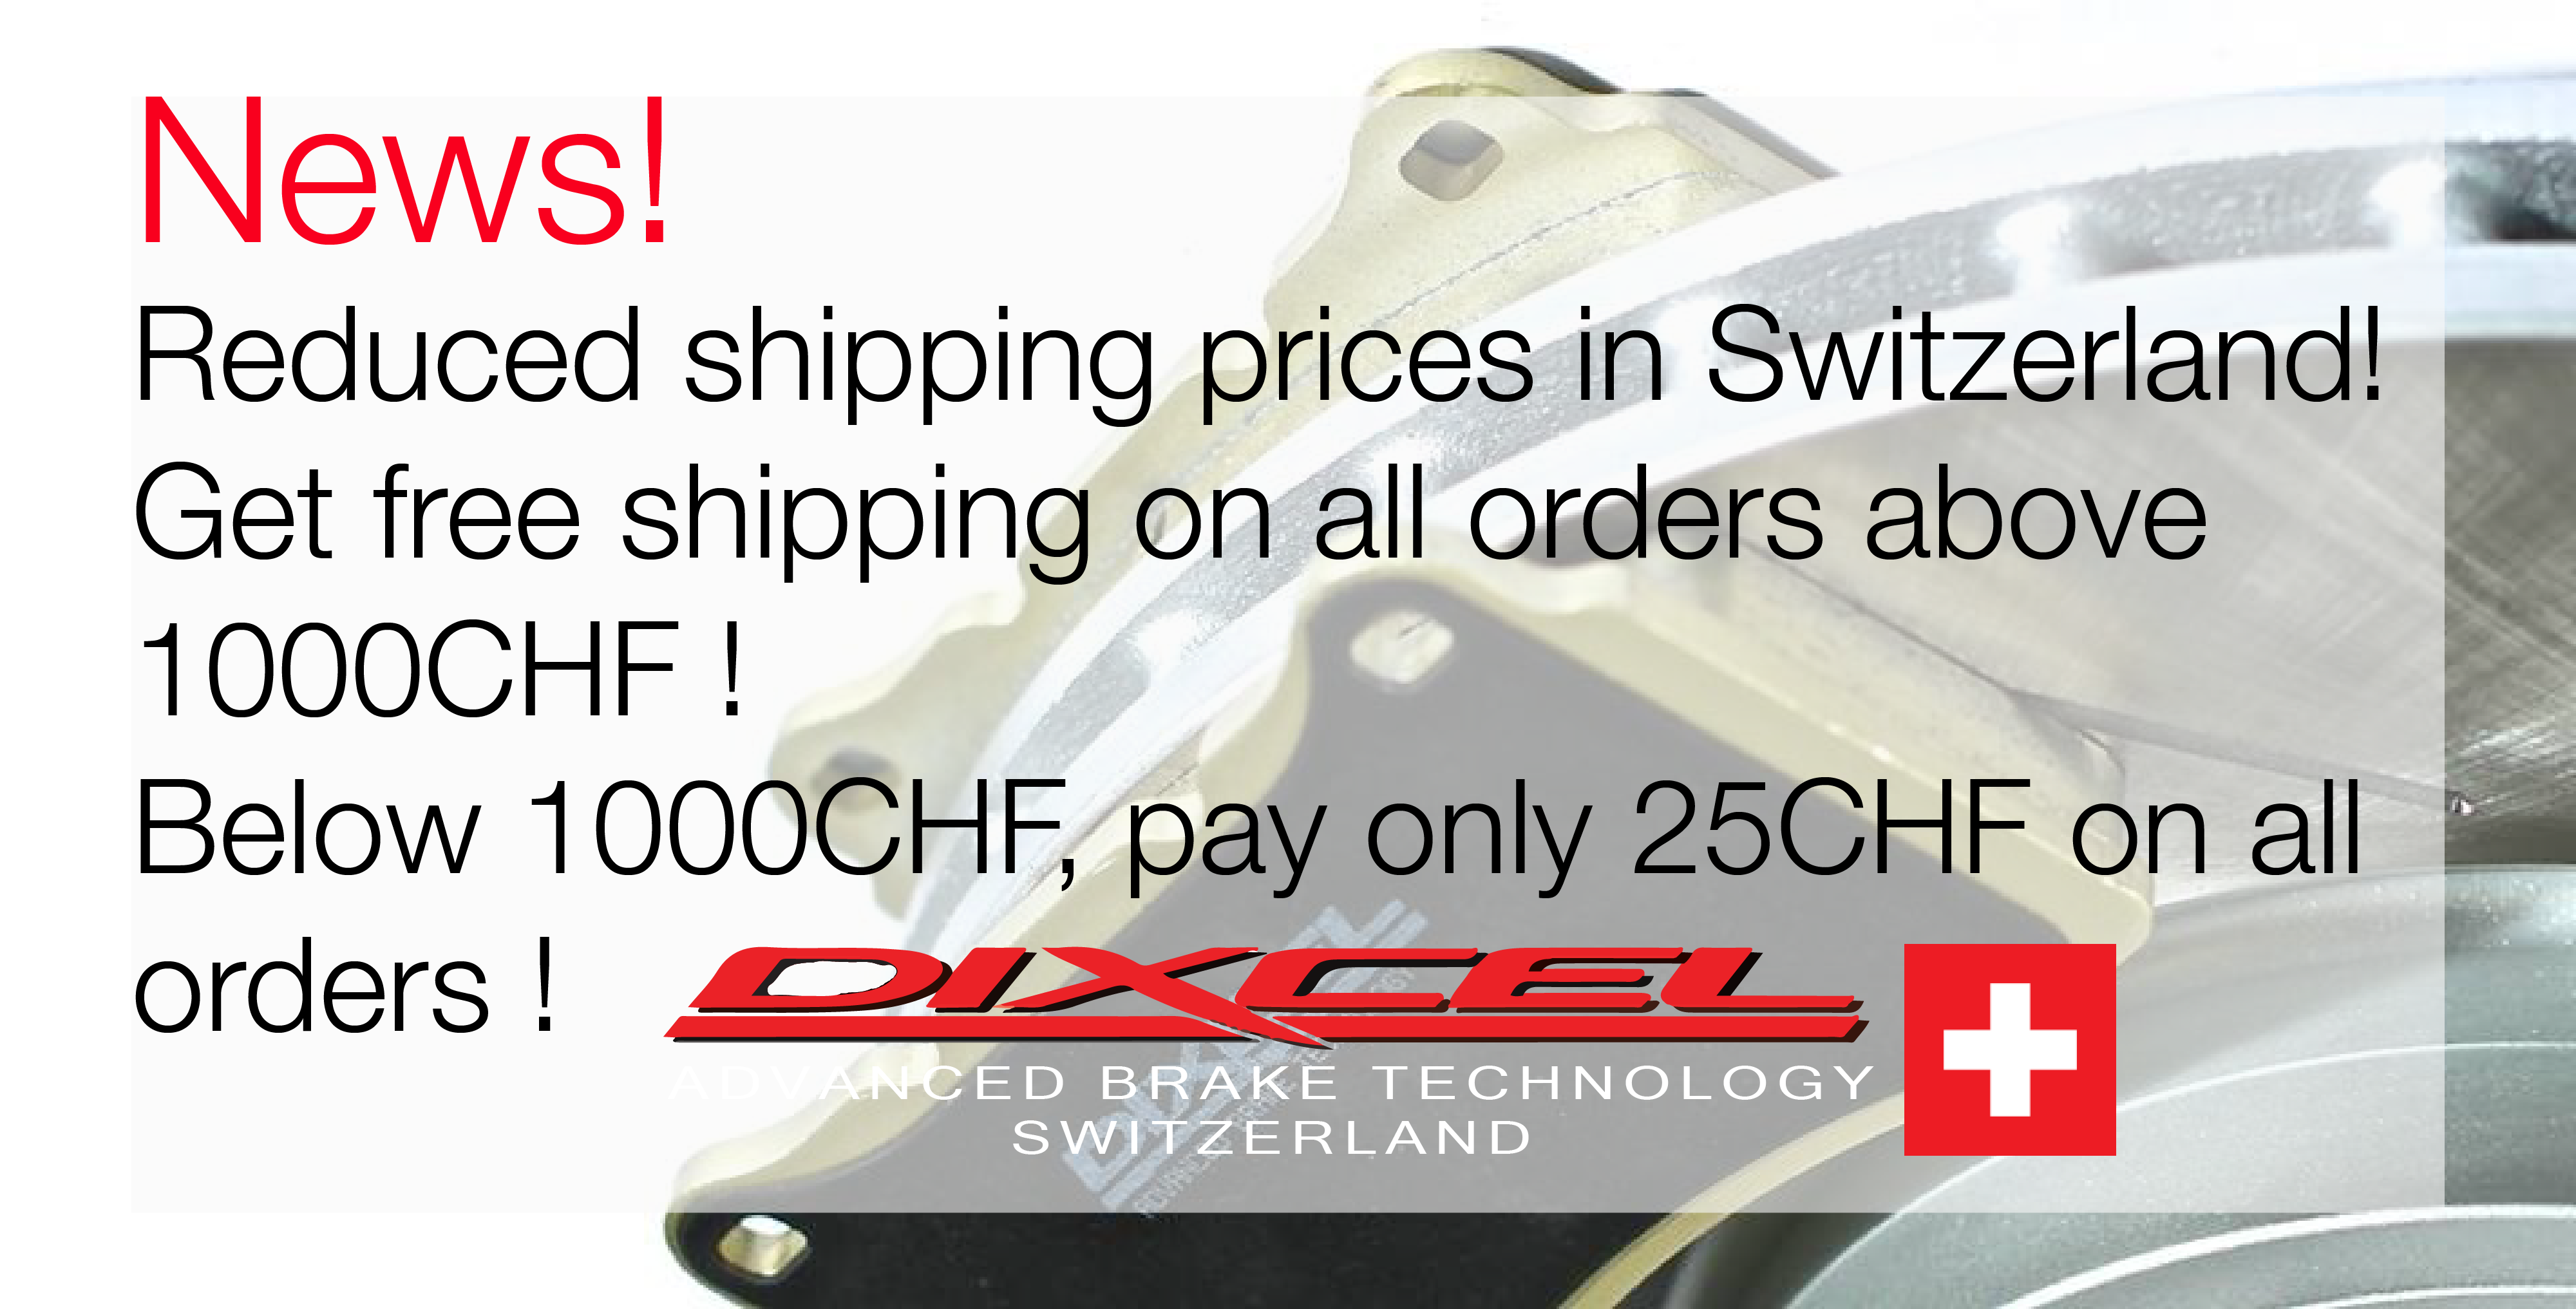 News! We've durably reduced our shipping prices for all our customers! Get free shipping on orders above 1000.-chf